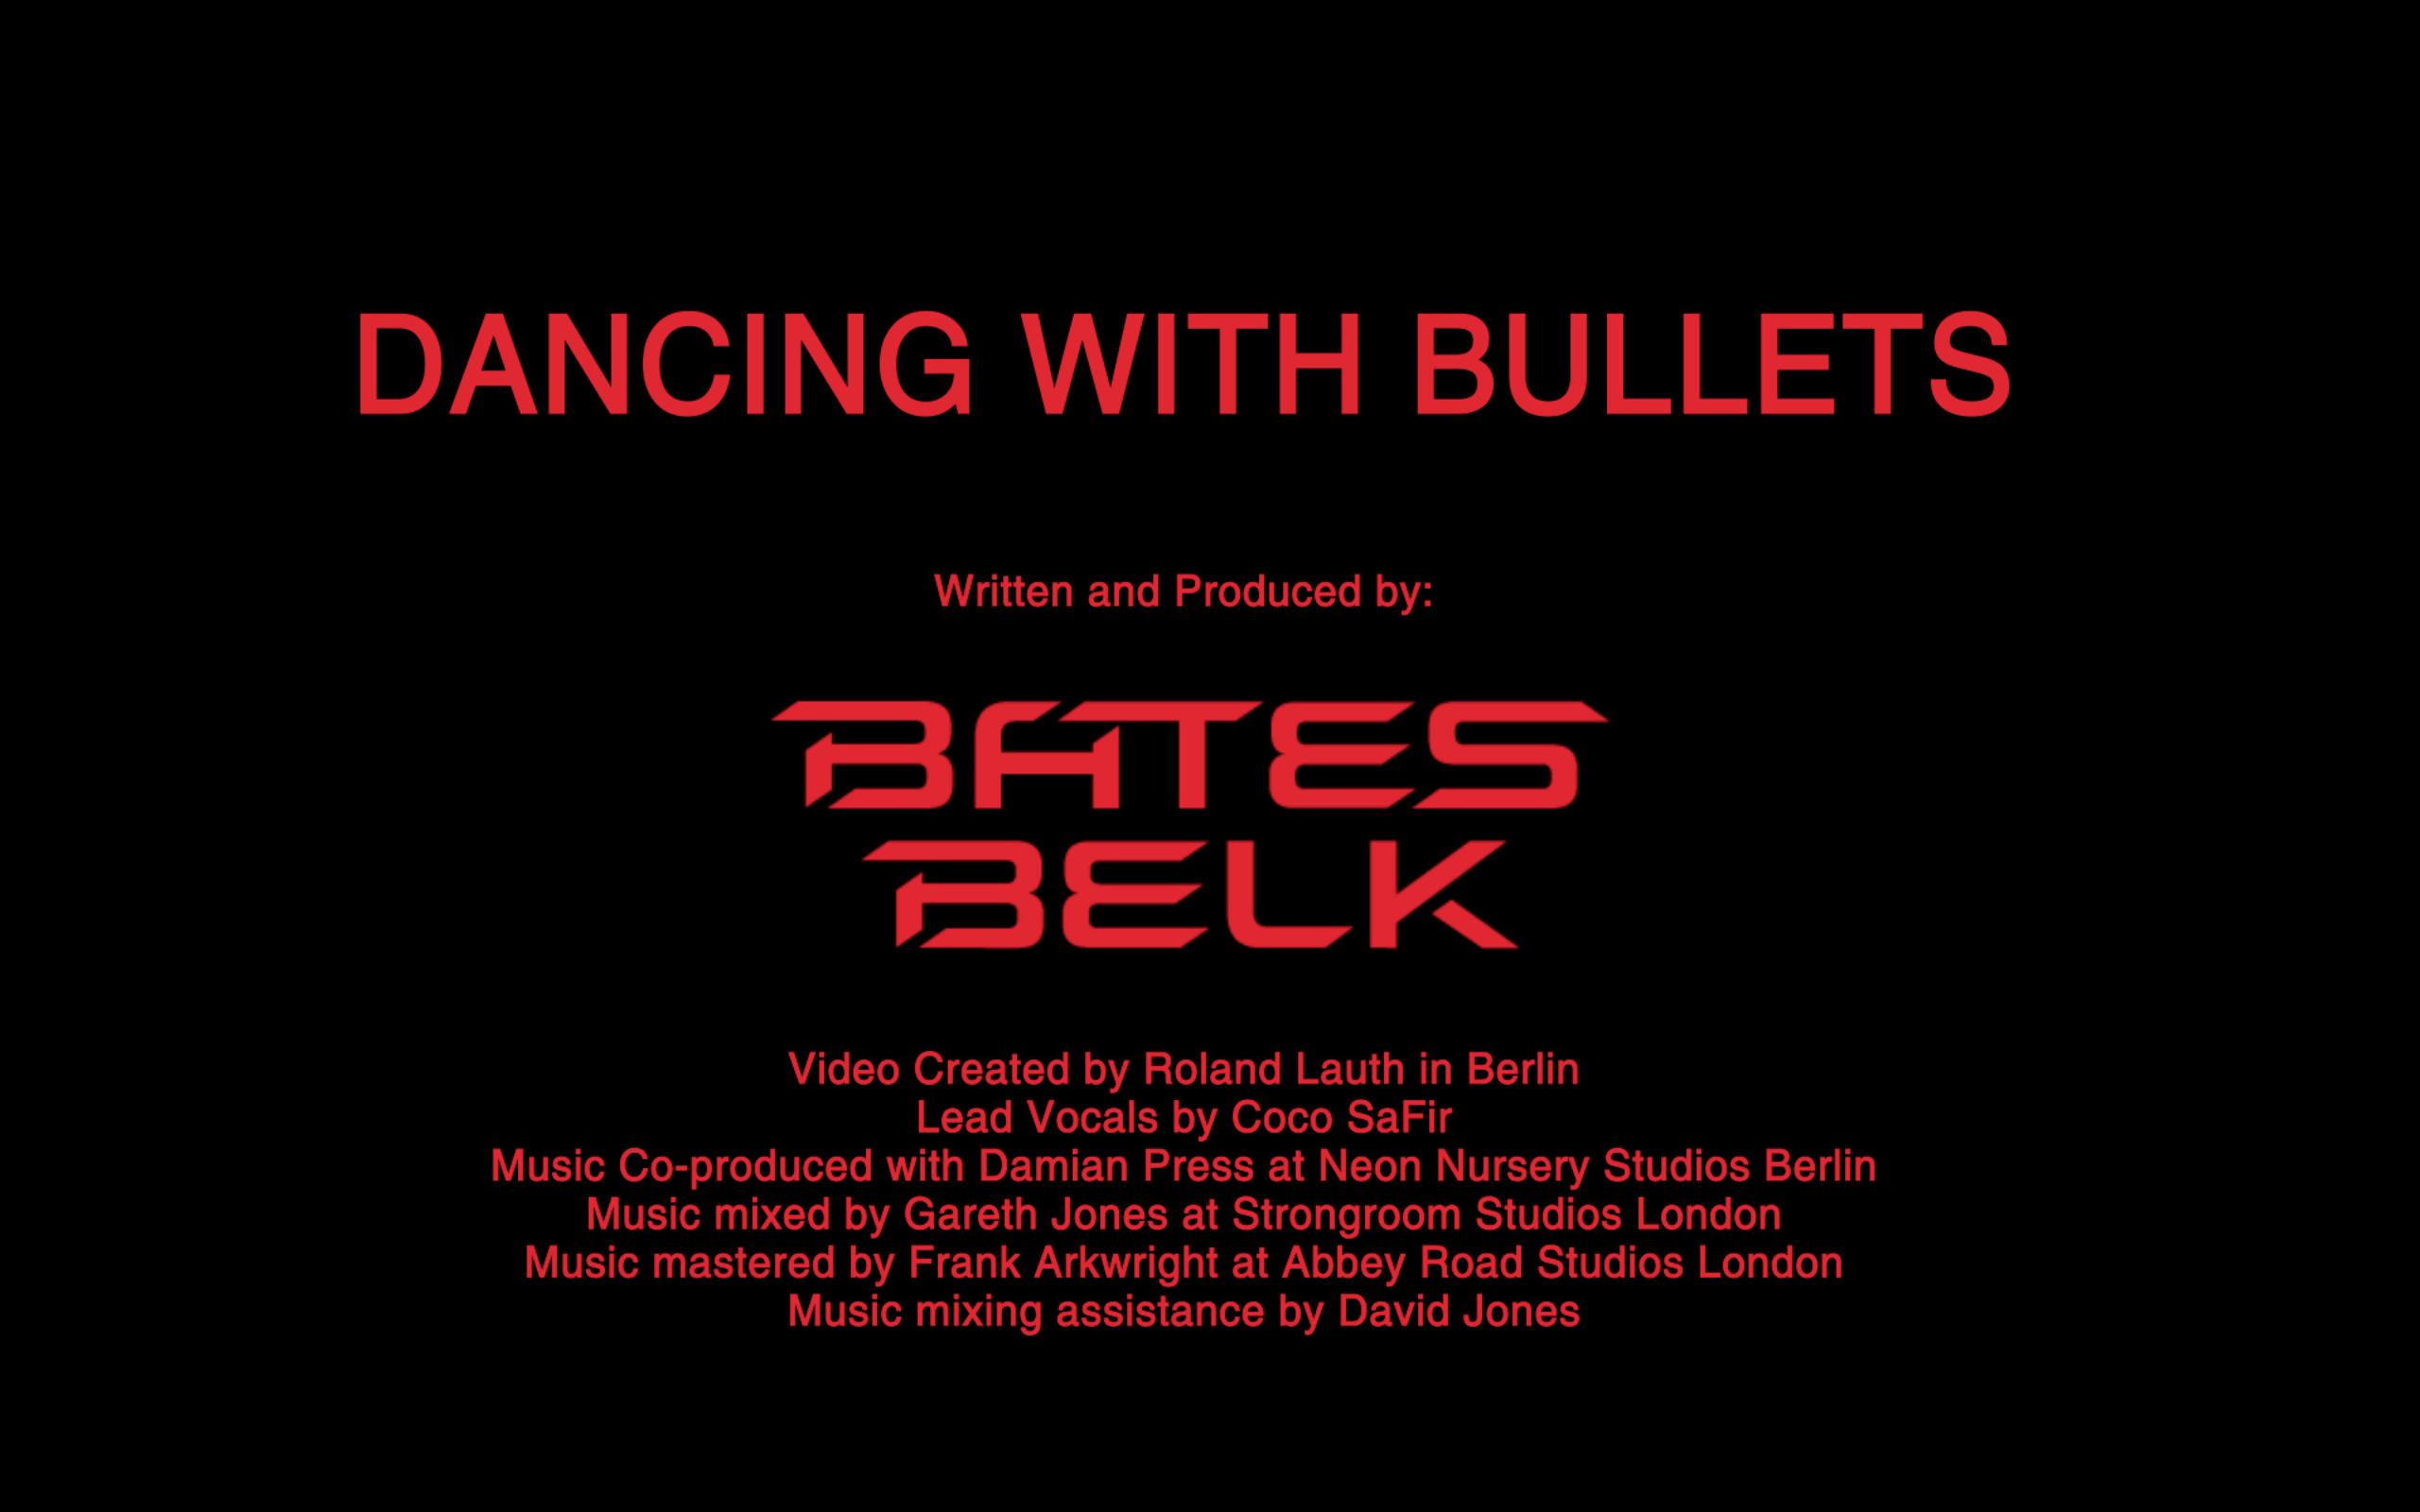 Bates Belk Dancing with Bullets Gun Control Anti-Gun Protest Second Amendment US Constitution